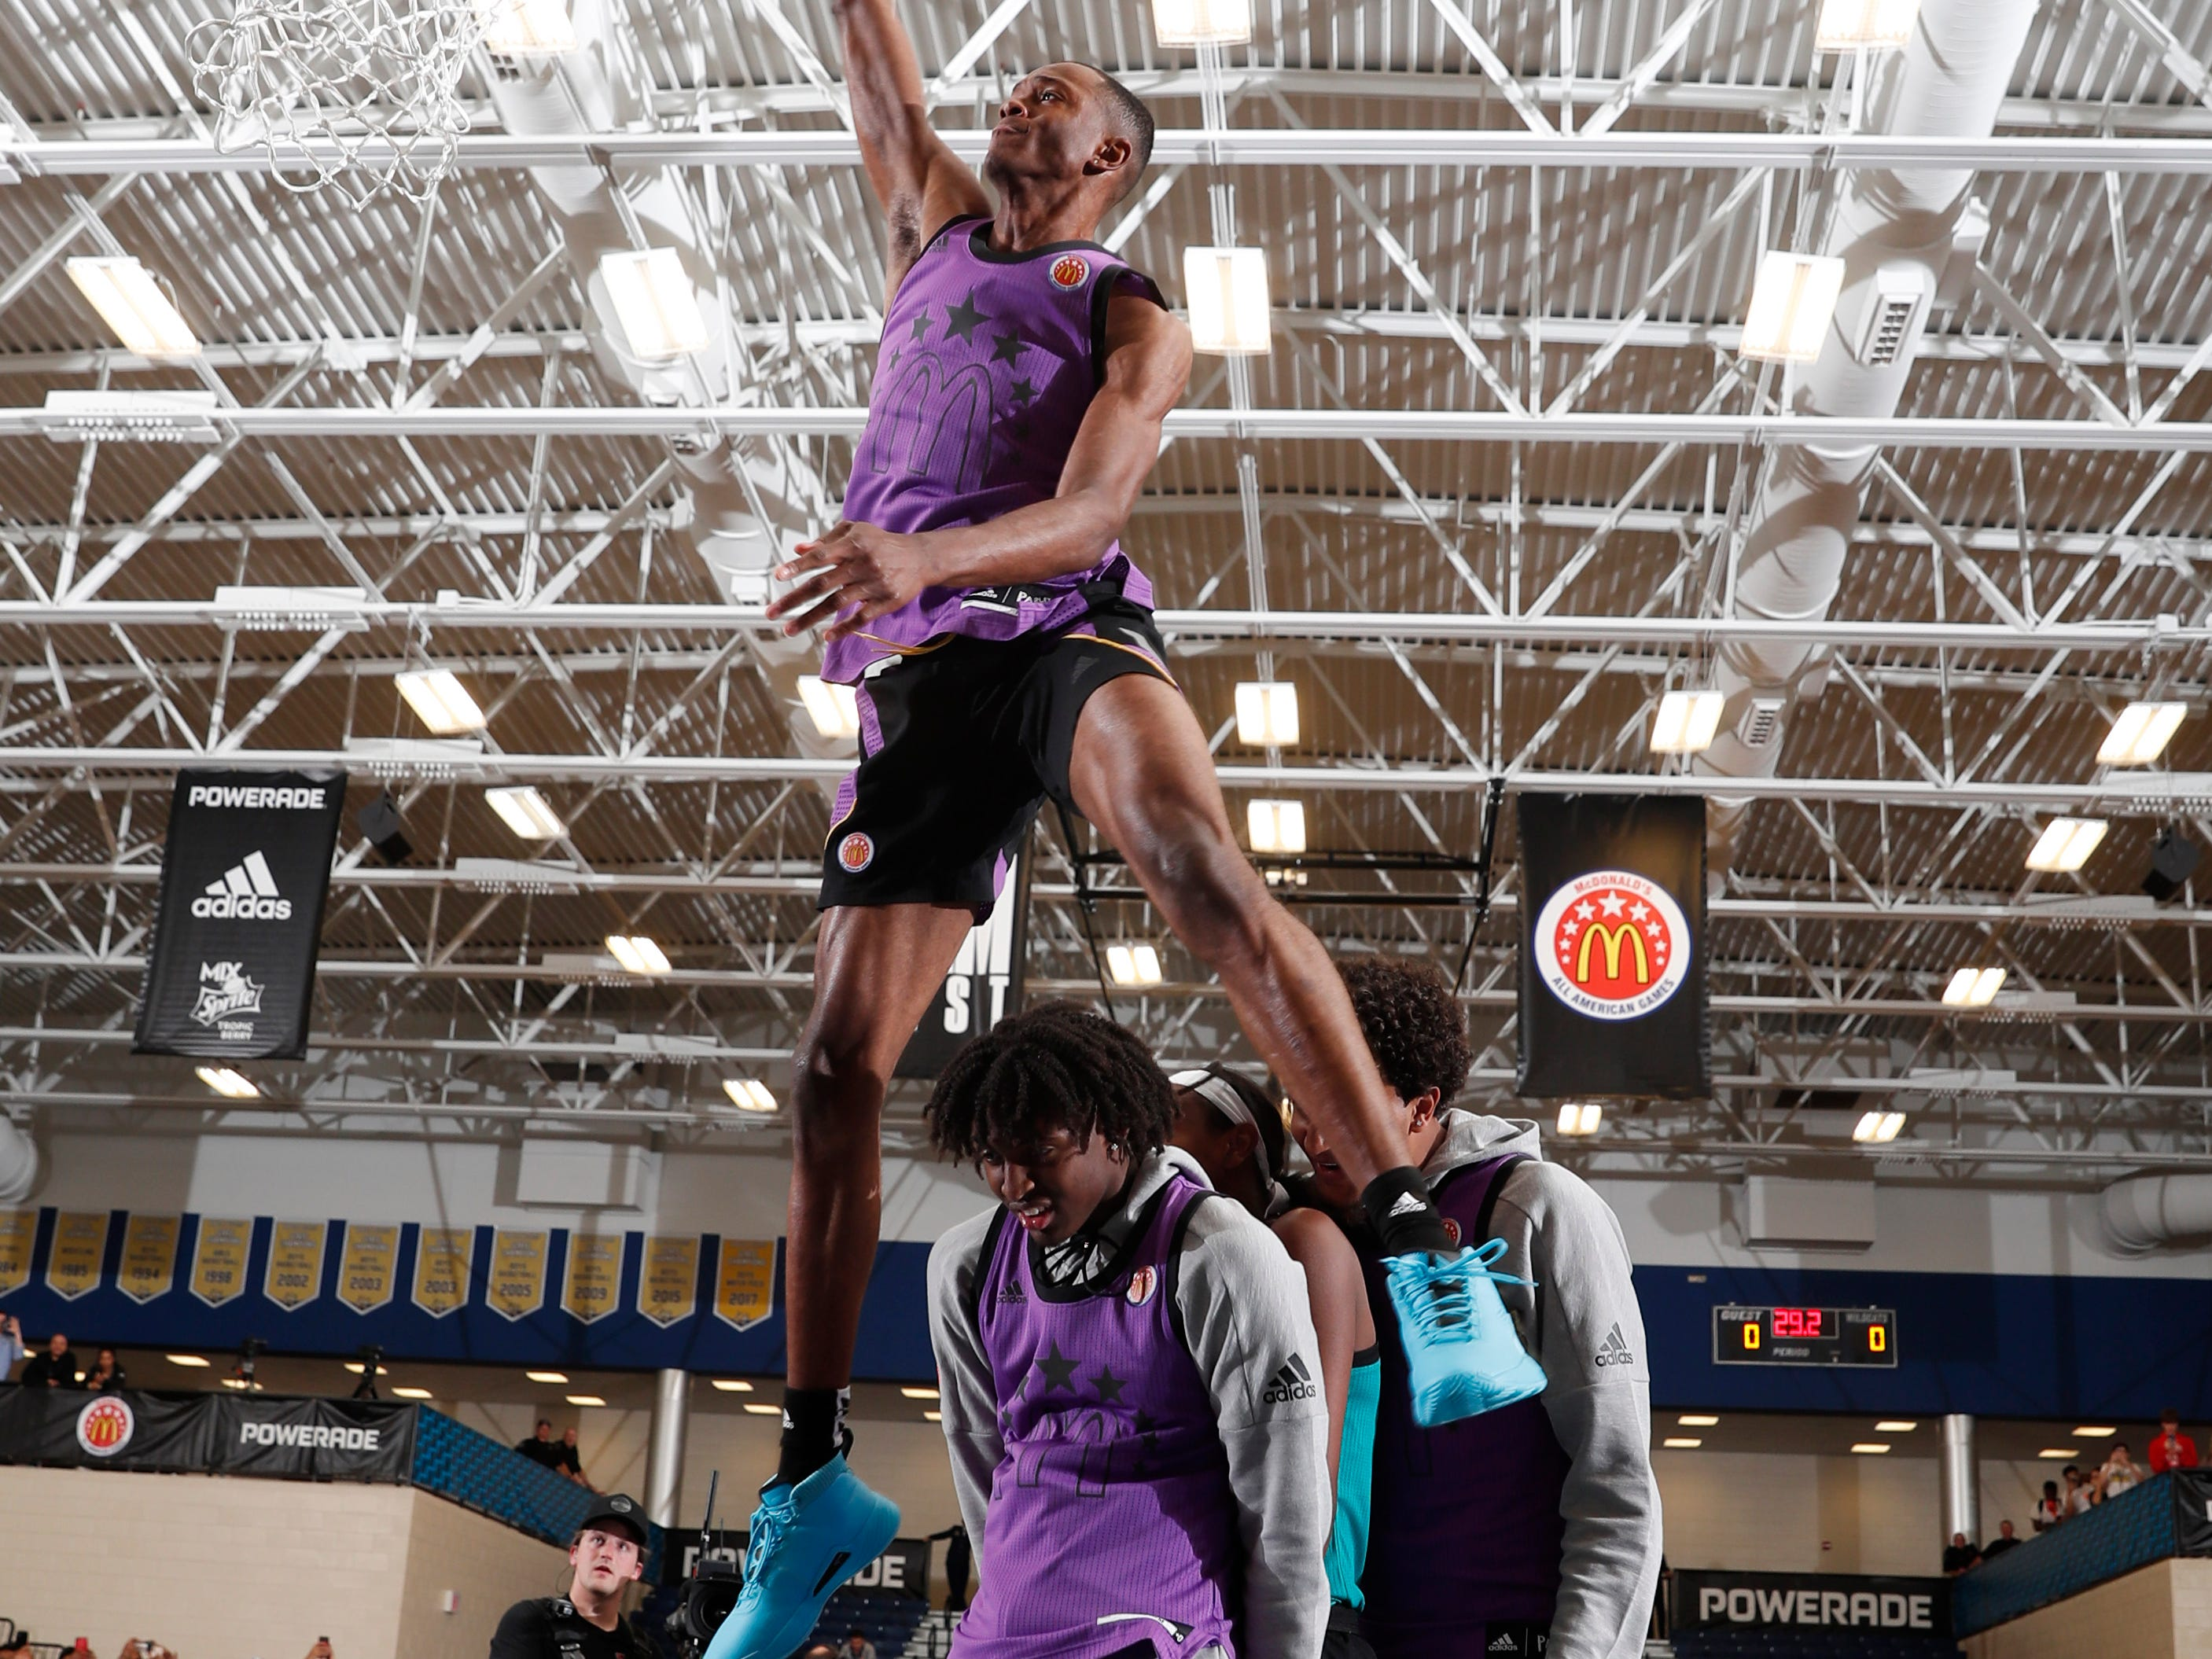 Mar 25, 2019; Marietta, GA, USA; McDonalds High School All American forward Scottie Lewis jumps over two players as he dunks during the Powerade Jamfest dunk competition at Wheeler High School. Mandatory Credit: Brian Spurlock-USA TODAY Sports